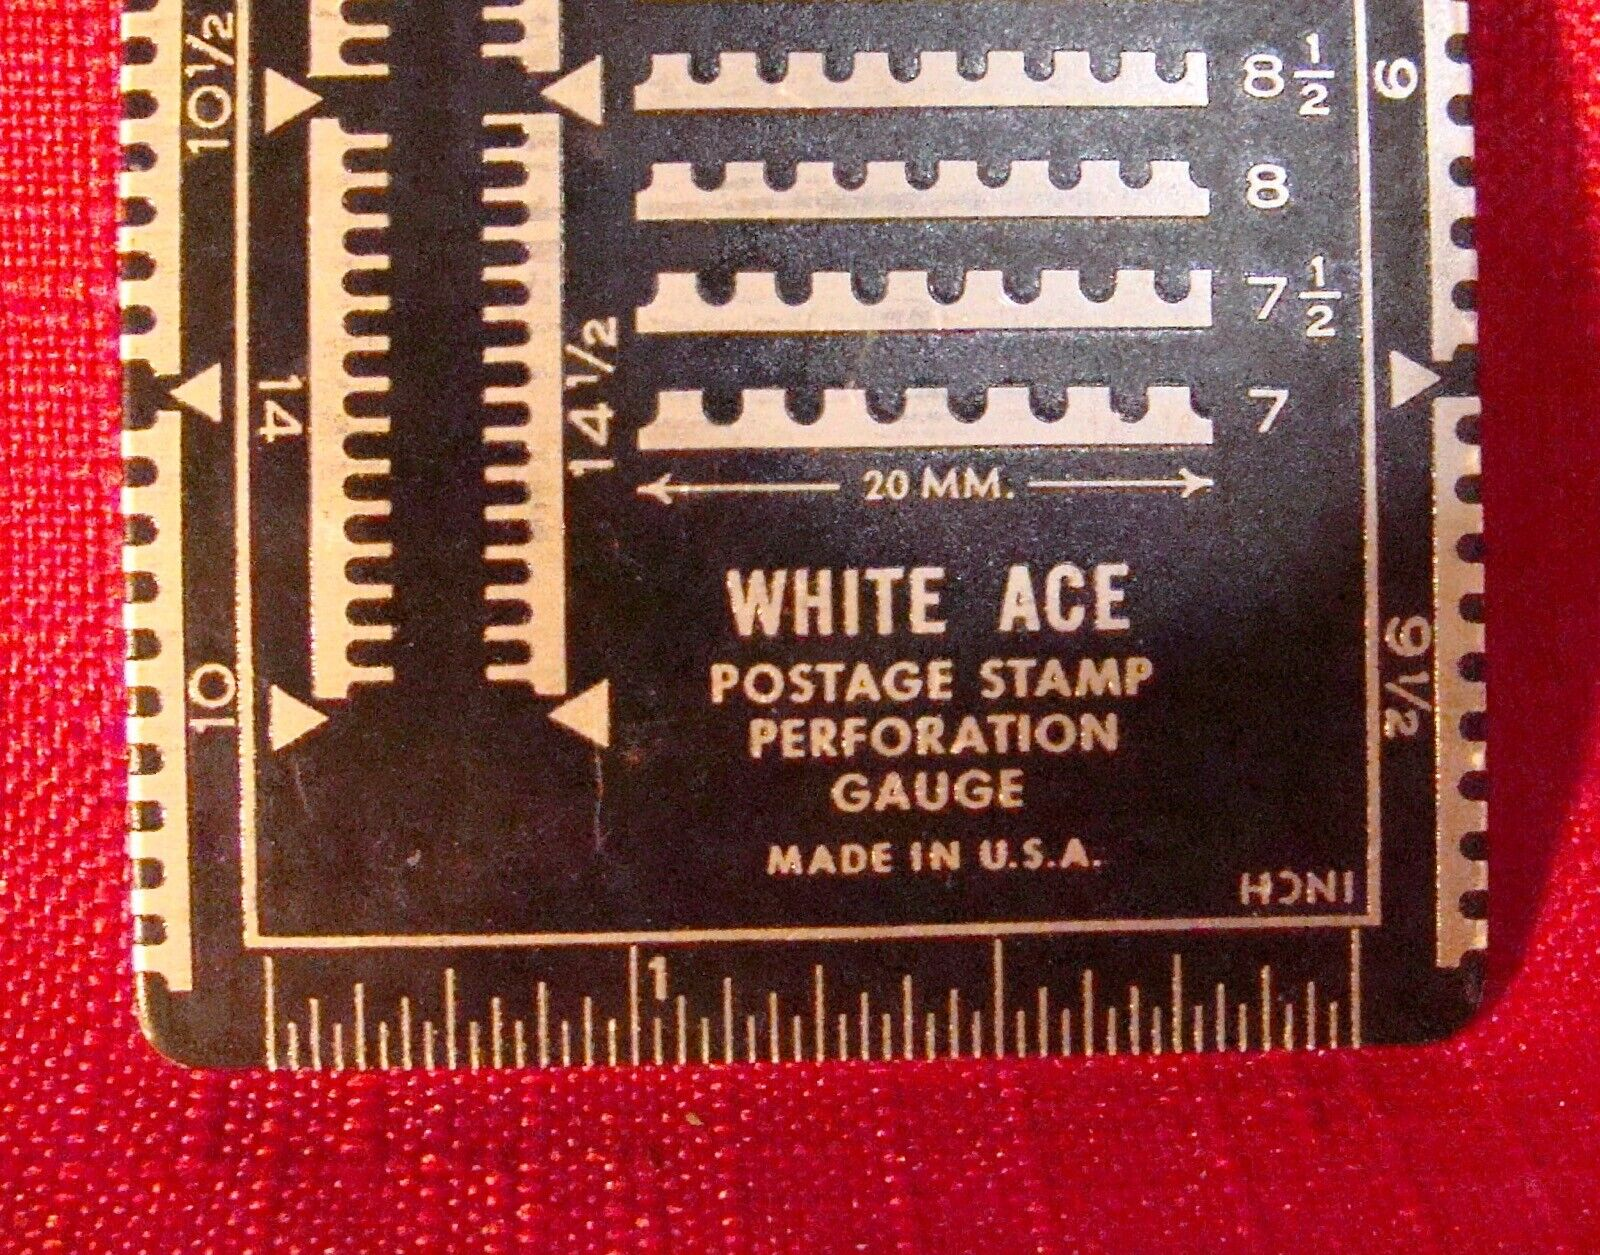 PHILATELIST POSTAGE STAMP PERFORATION TIN GAUGE BY WHITE ACE